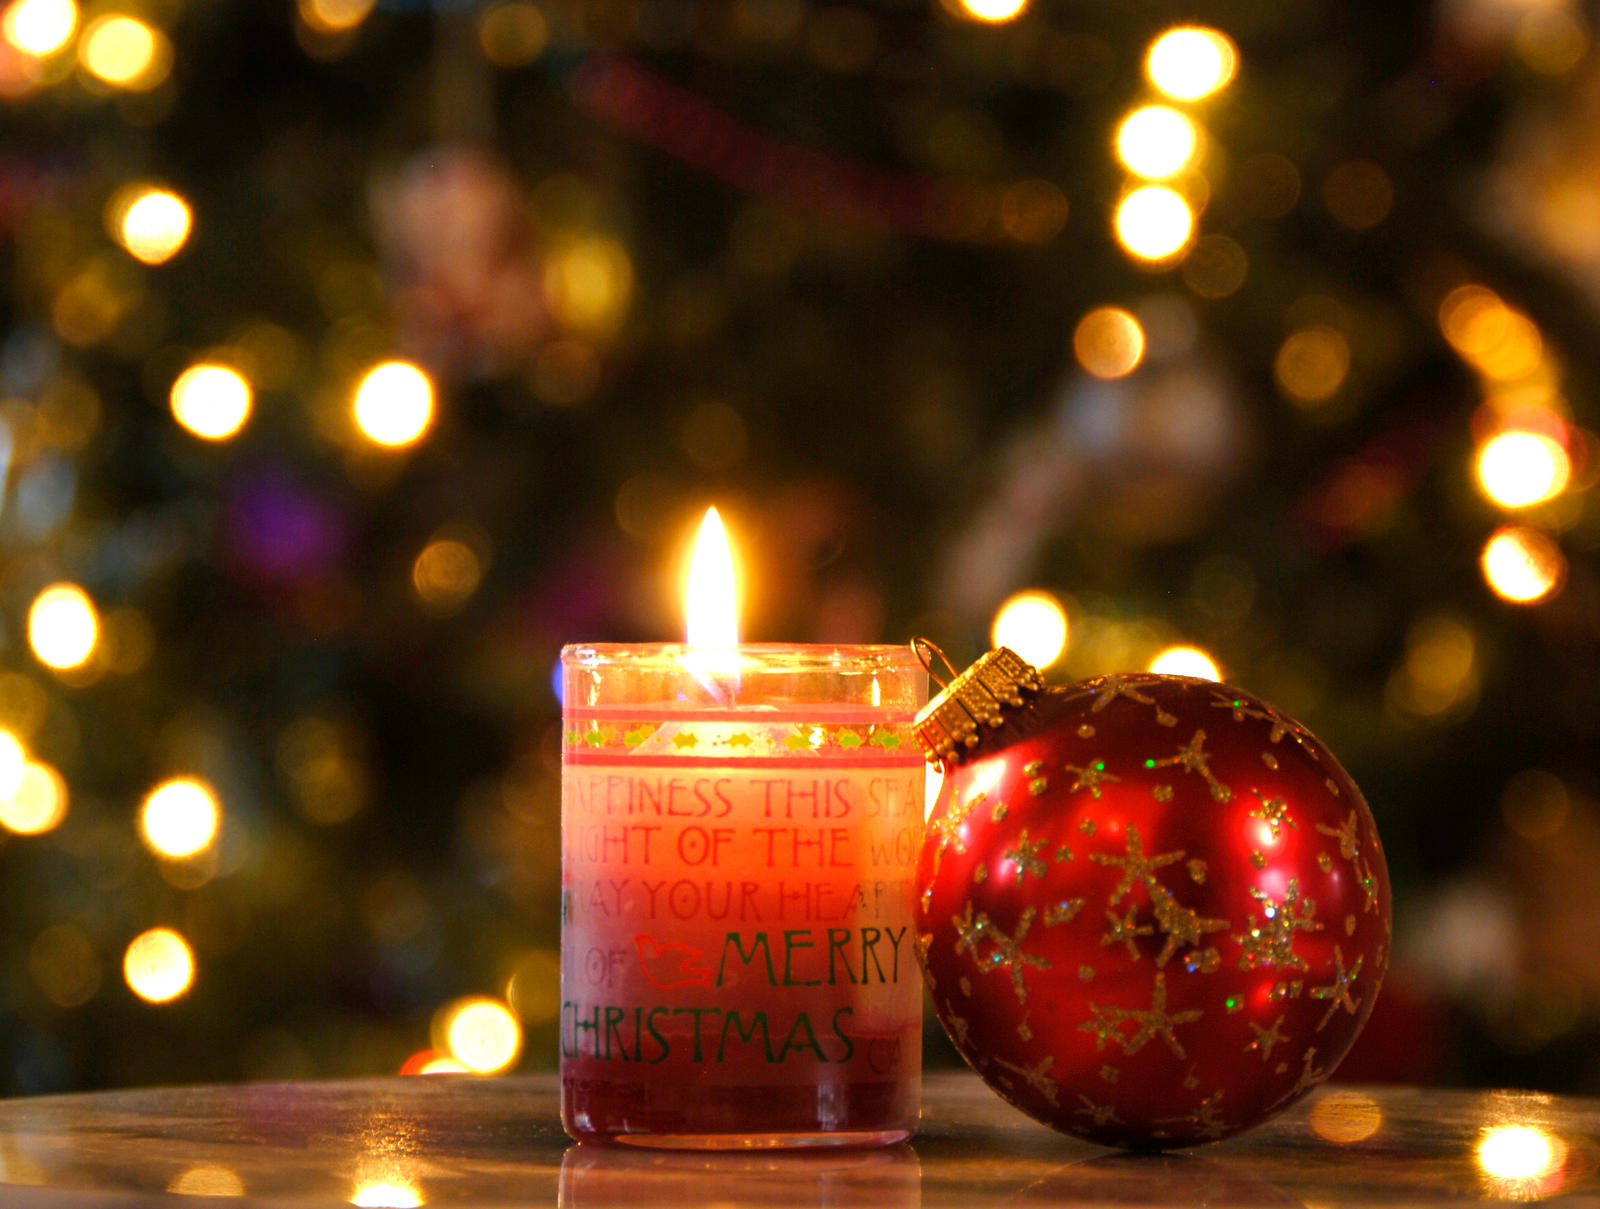 Christmas candle and ornament by mogieg123 on deviantart for Christmas candles and ornaments